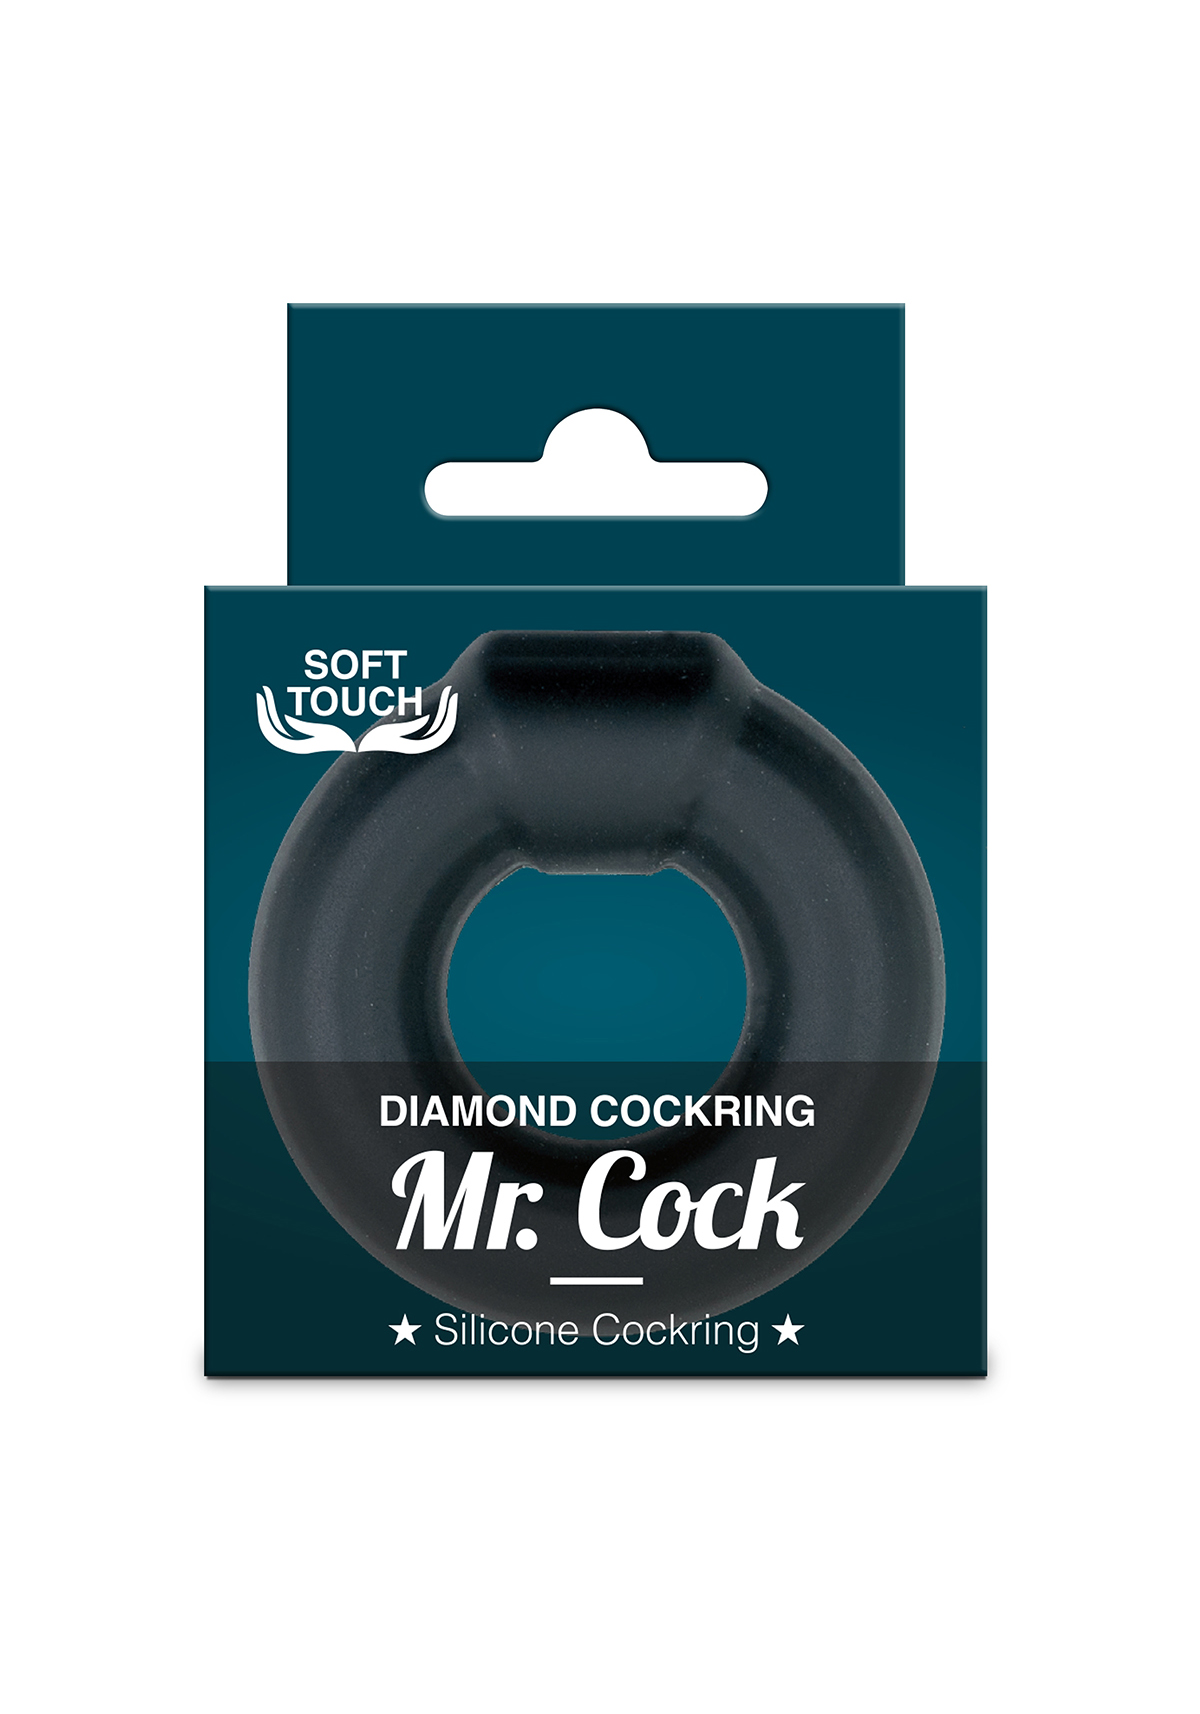 Mr. Cock Diamond Cockring